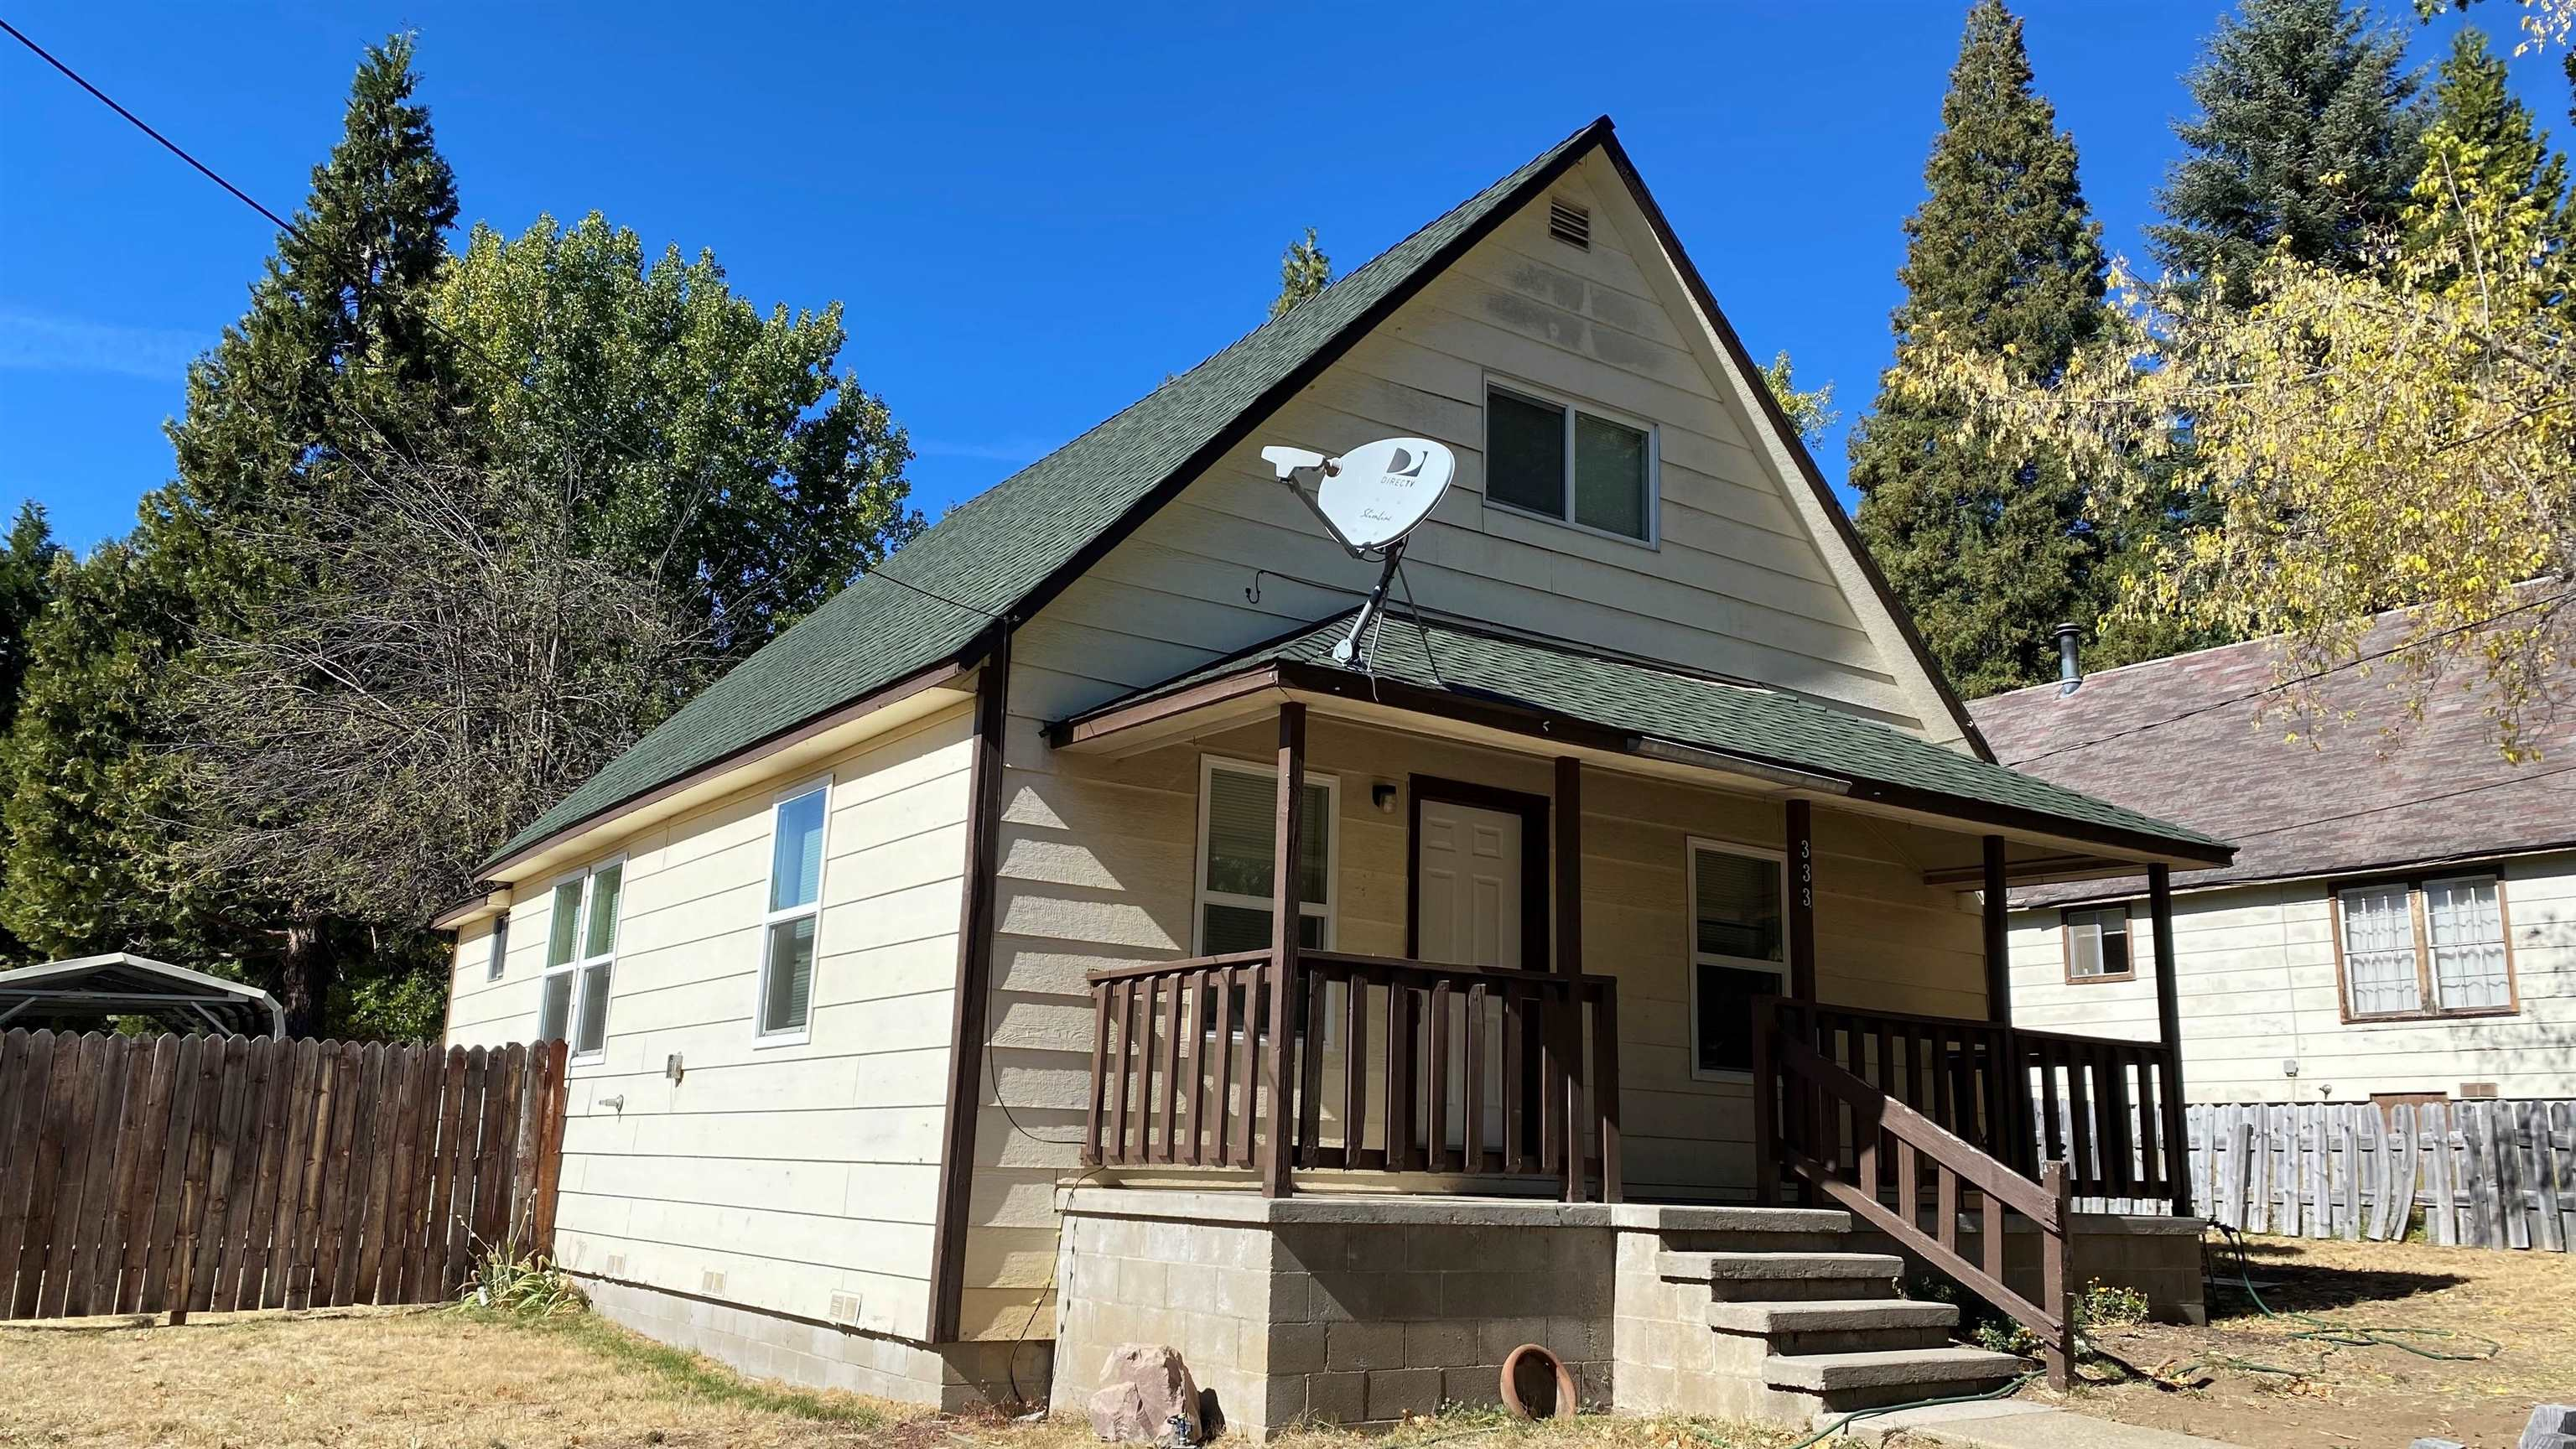 Great starter home in beautiful McCloud.  This home sports a new kitchen and and flooring downstairs and large bedrooms upstairs.  You will love the open floor plan that offers plenty of natural light throughout the house.  Nice shed and carport of the alley access.  Just minutes from downtown McCloud, Lake McCloud, Mt. Shasta Board & Ski Park.  Would make for an amazing second home.